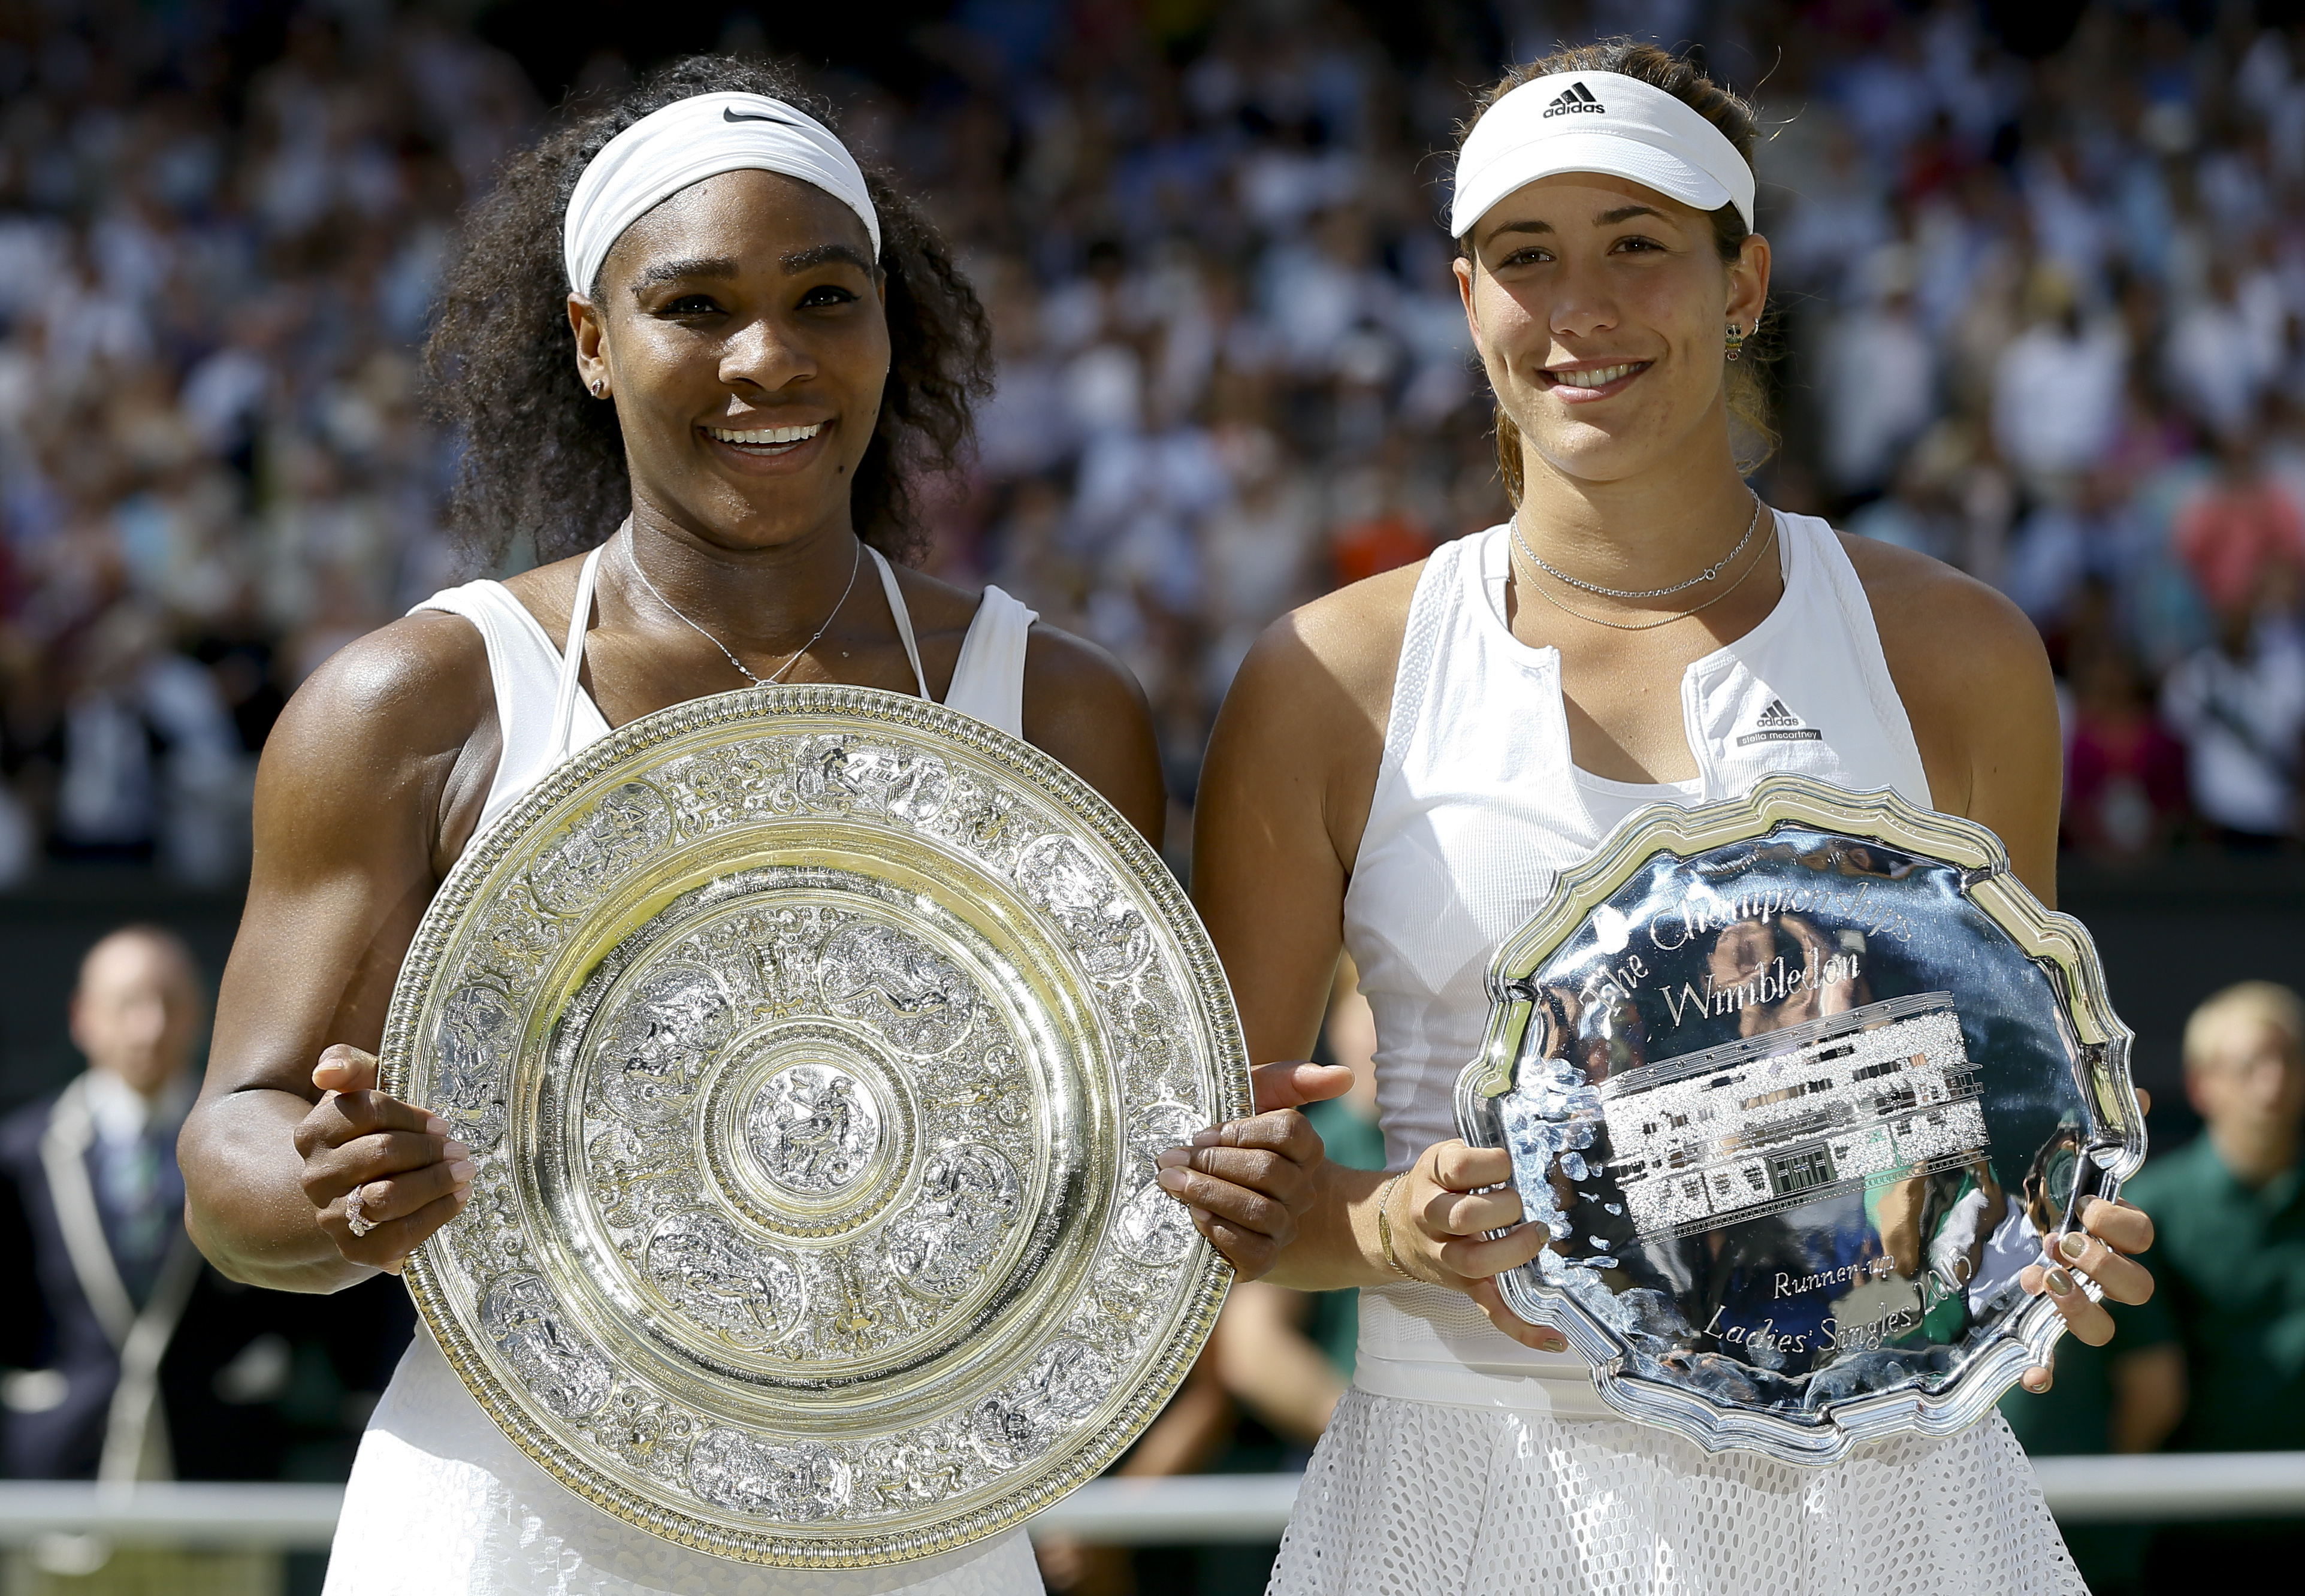 Serena Williams of the United States, left and  Garbine Muguruza of Spain hold up their trophies after the women's singles final against at the All England Lawn Tennis Championships in Wimbledon, London, Saturday July 11, 2015. Williams won 6-4, 6-4. (AP